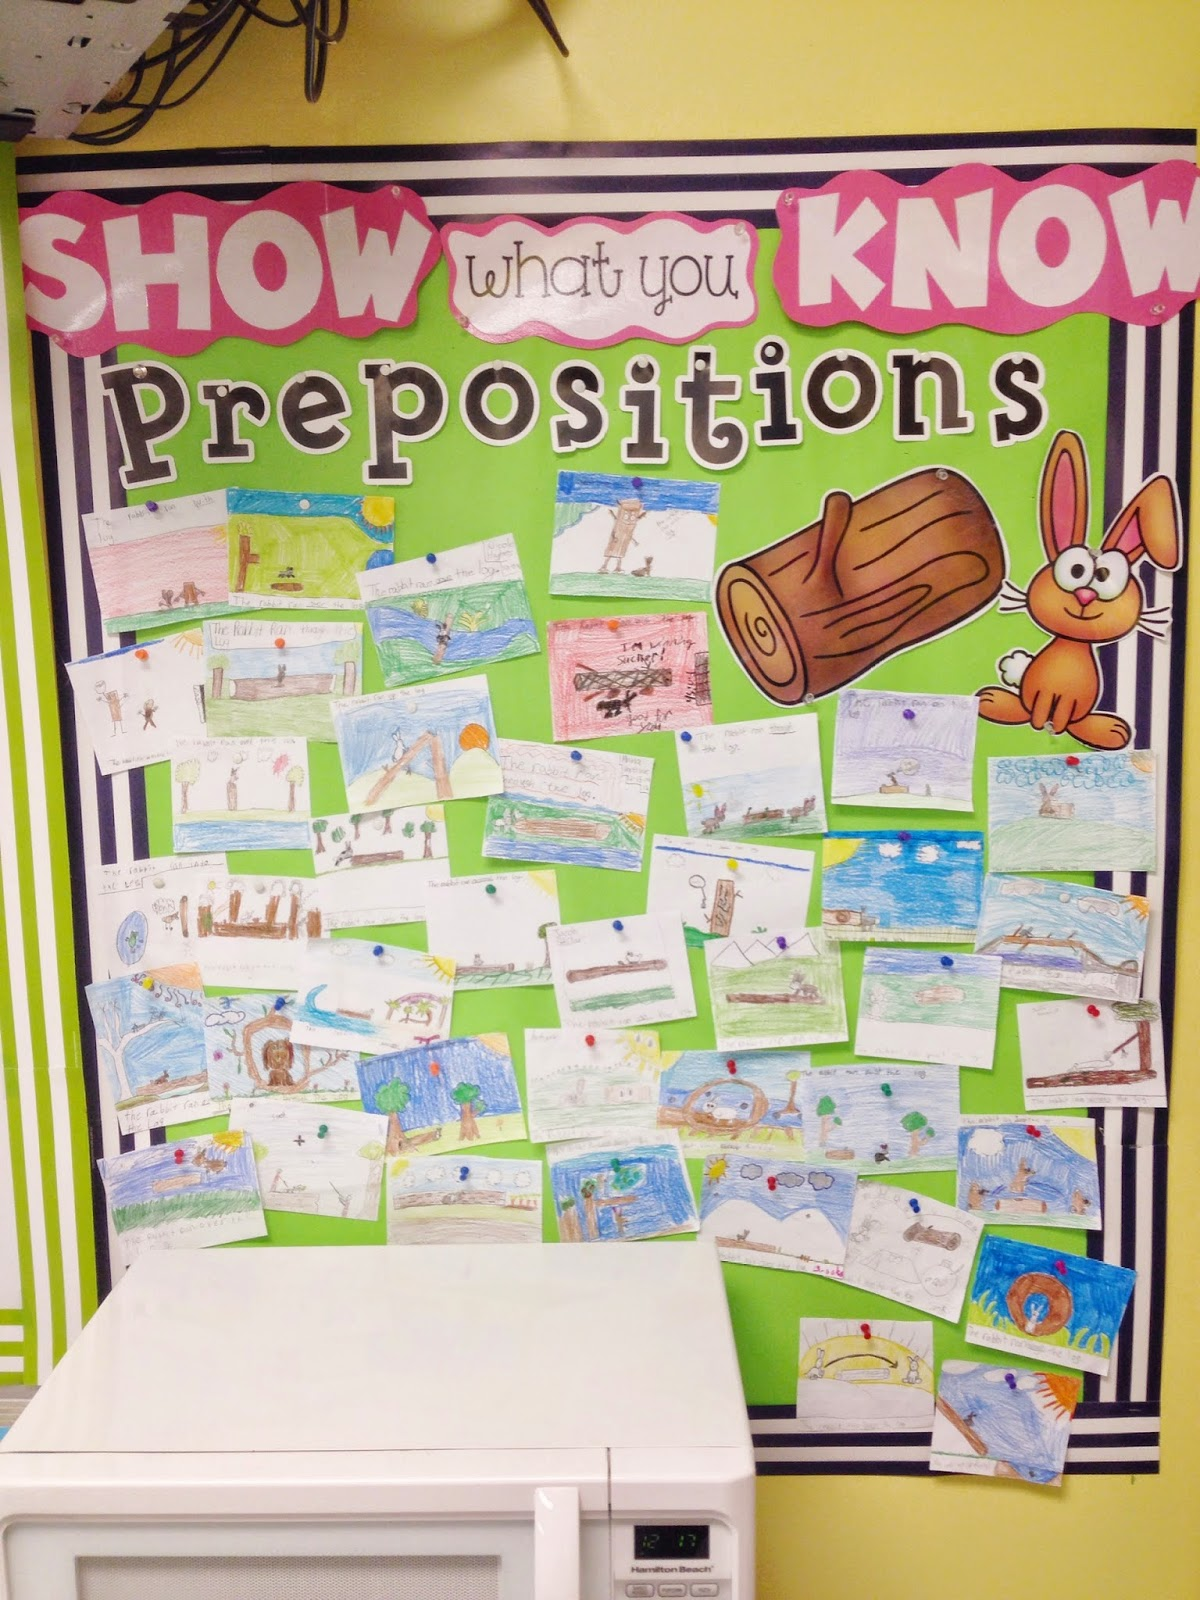 Prepositions With The Rabbit And The Log C Jayne Giveaway Winner